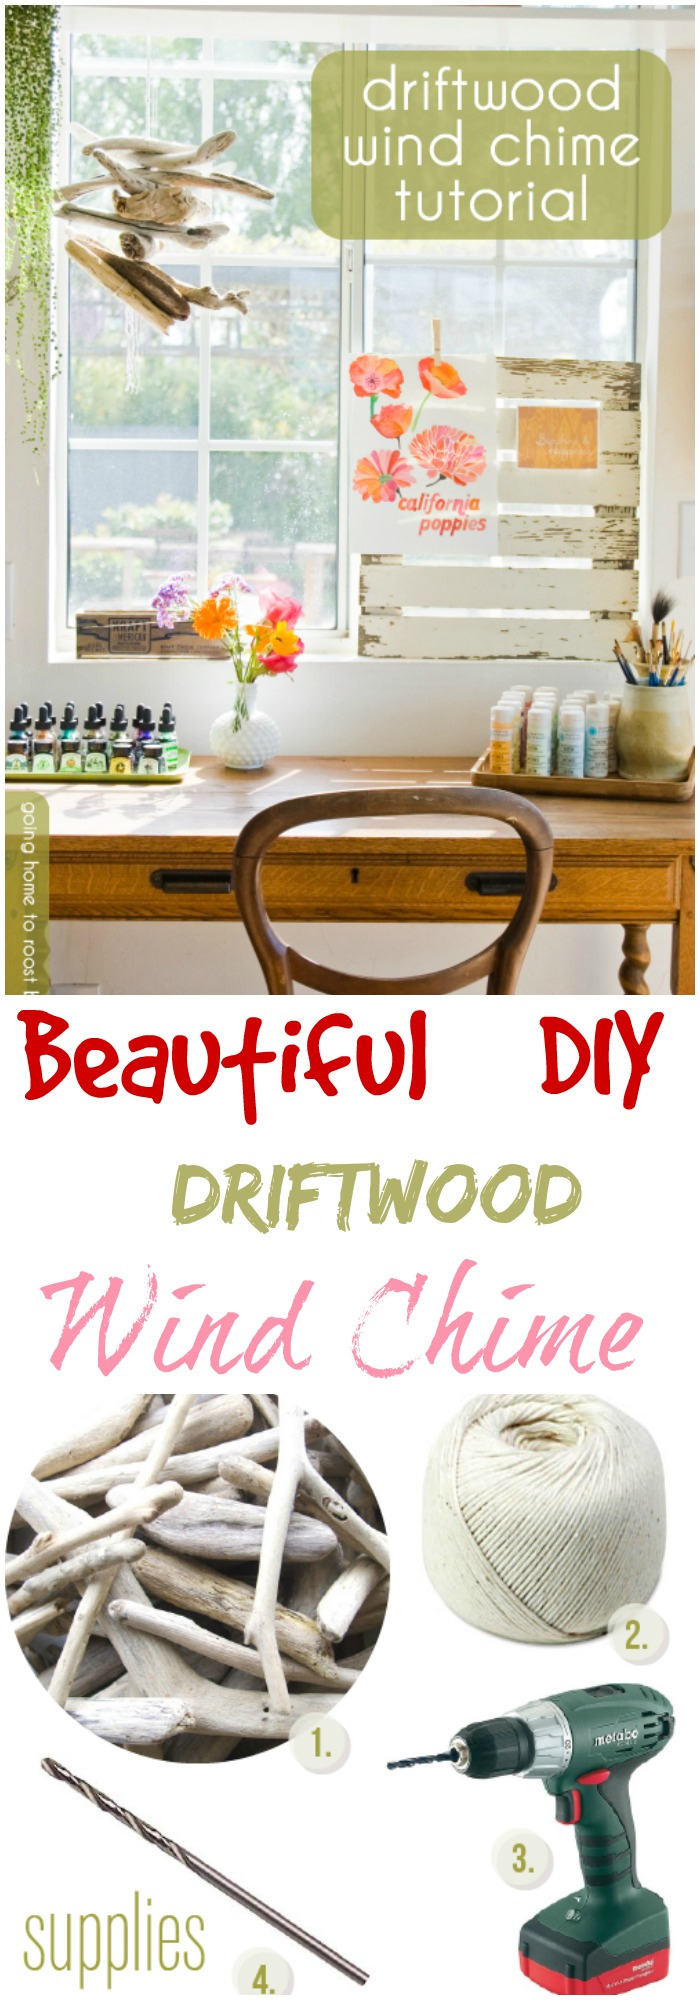 Outstanding DIY Wind Chimes Ideas To Make Your Home Marvelous Beautiful DIY Driftwood Wind Chime